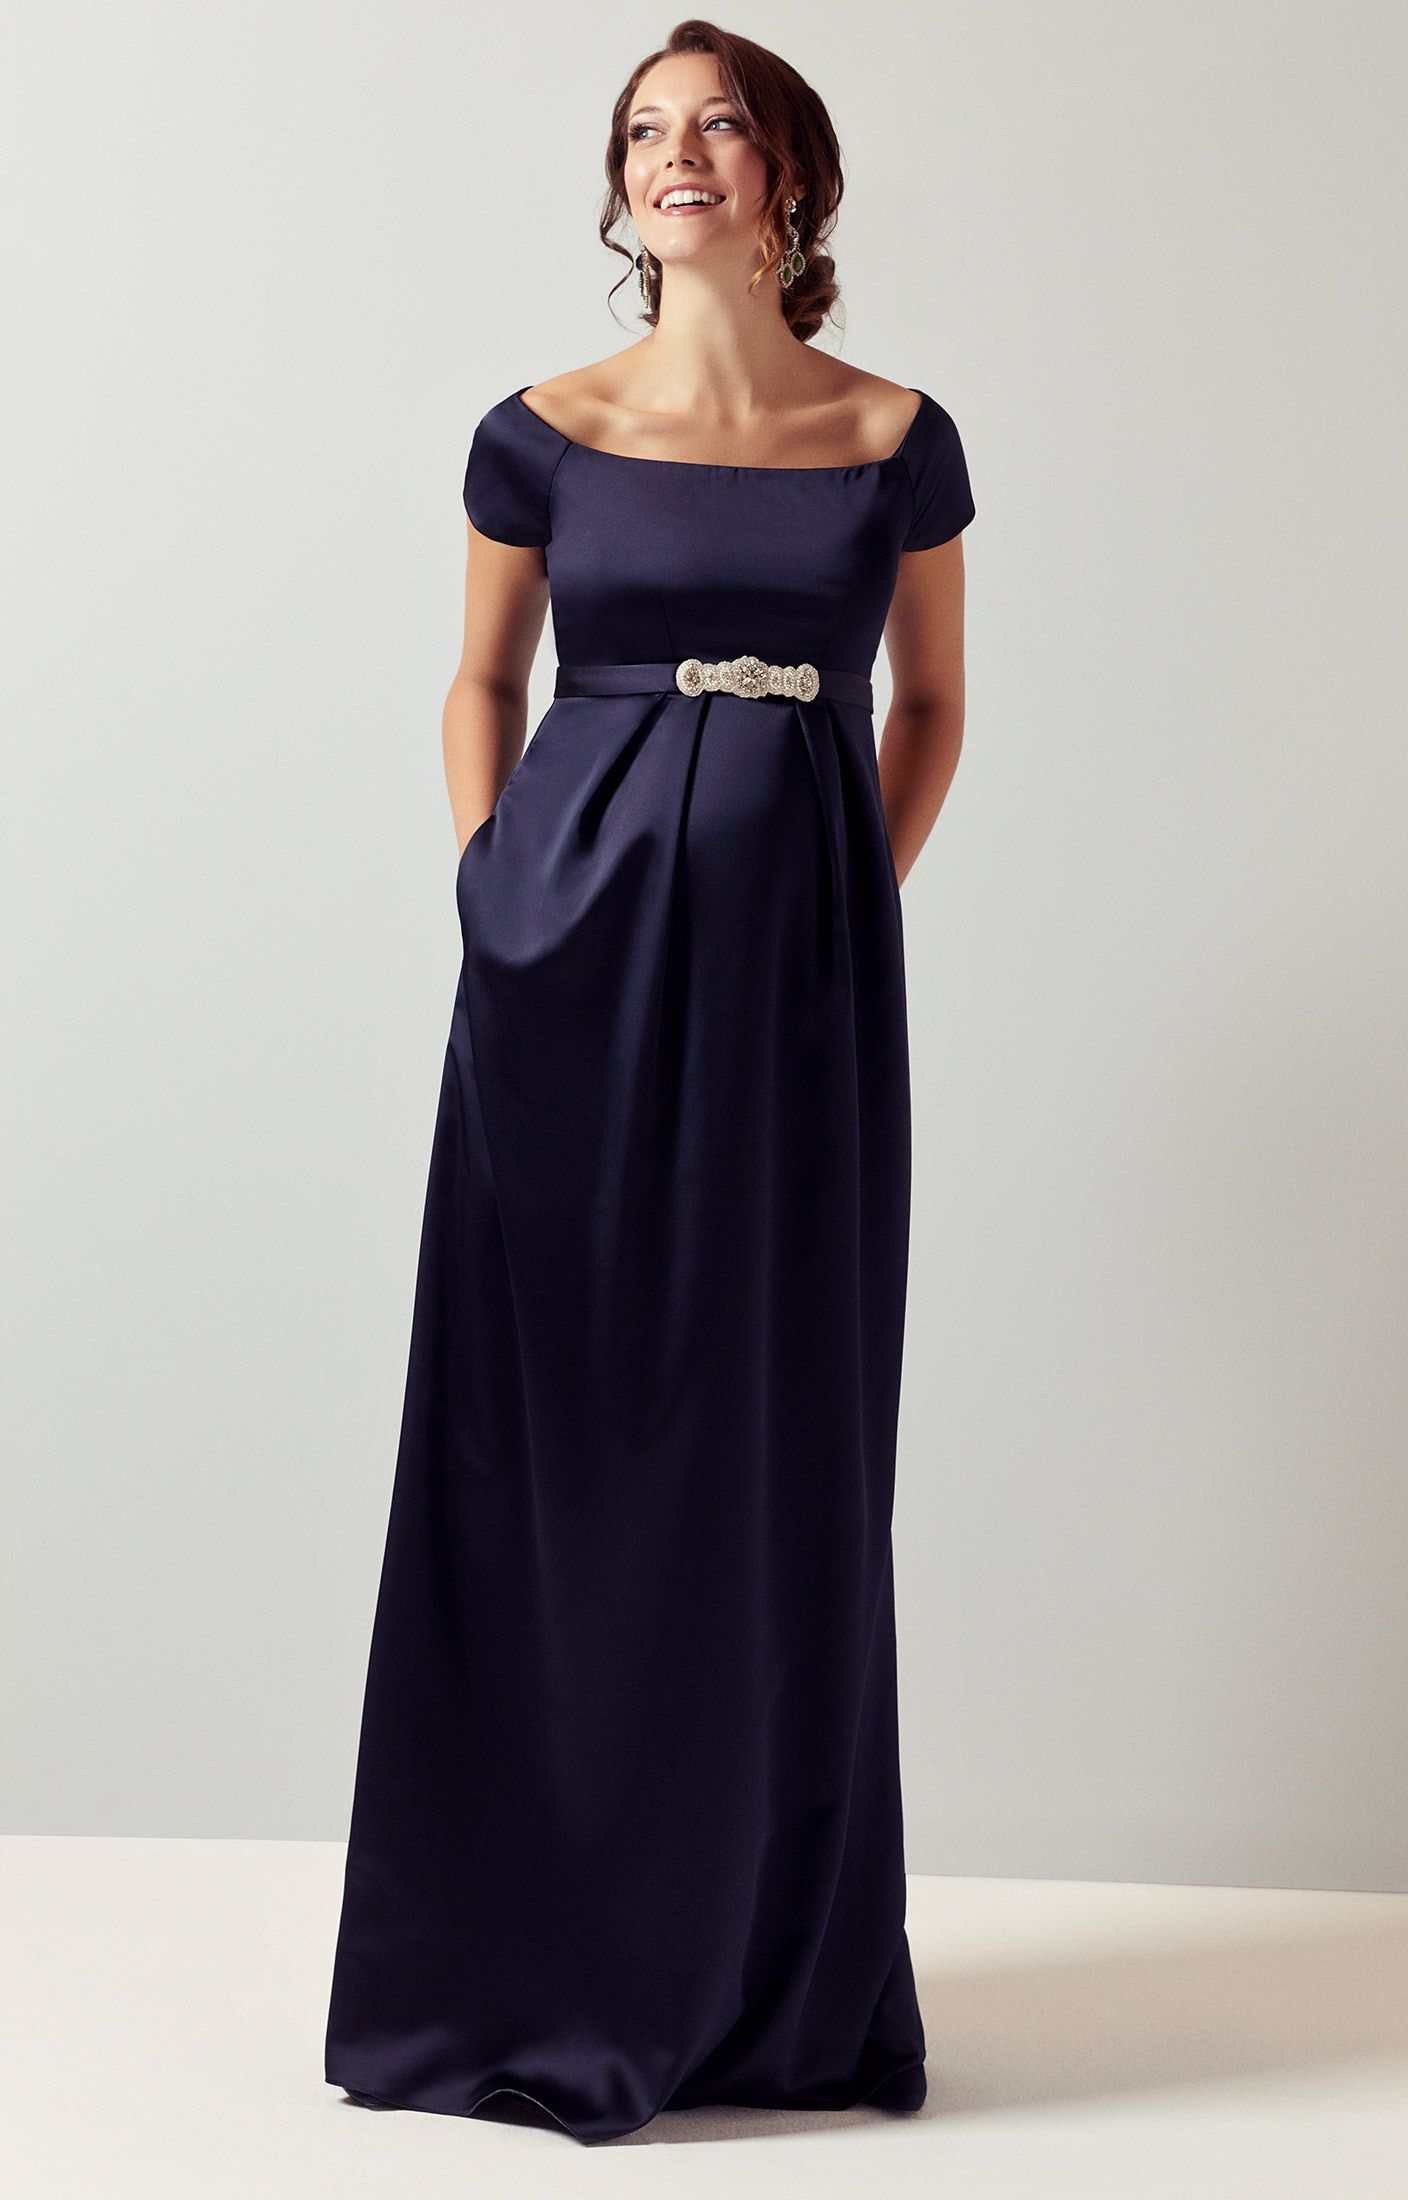 8a5686229e If you re looking for a statement dress then our Aria long midnight  maternity gown will guarantee you a show-stopping entrance.